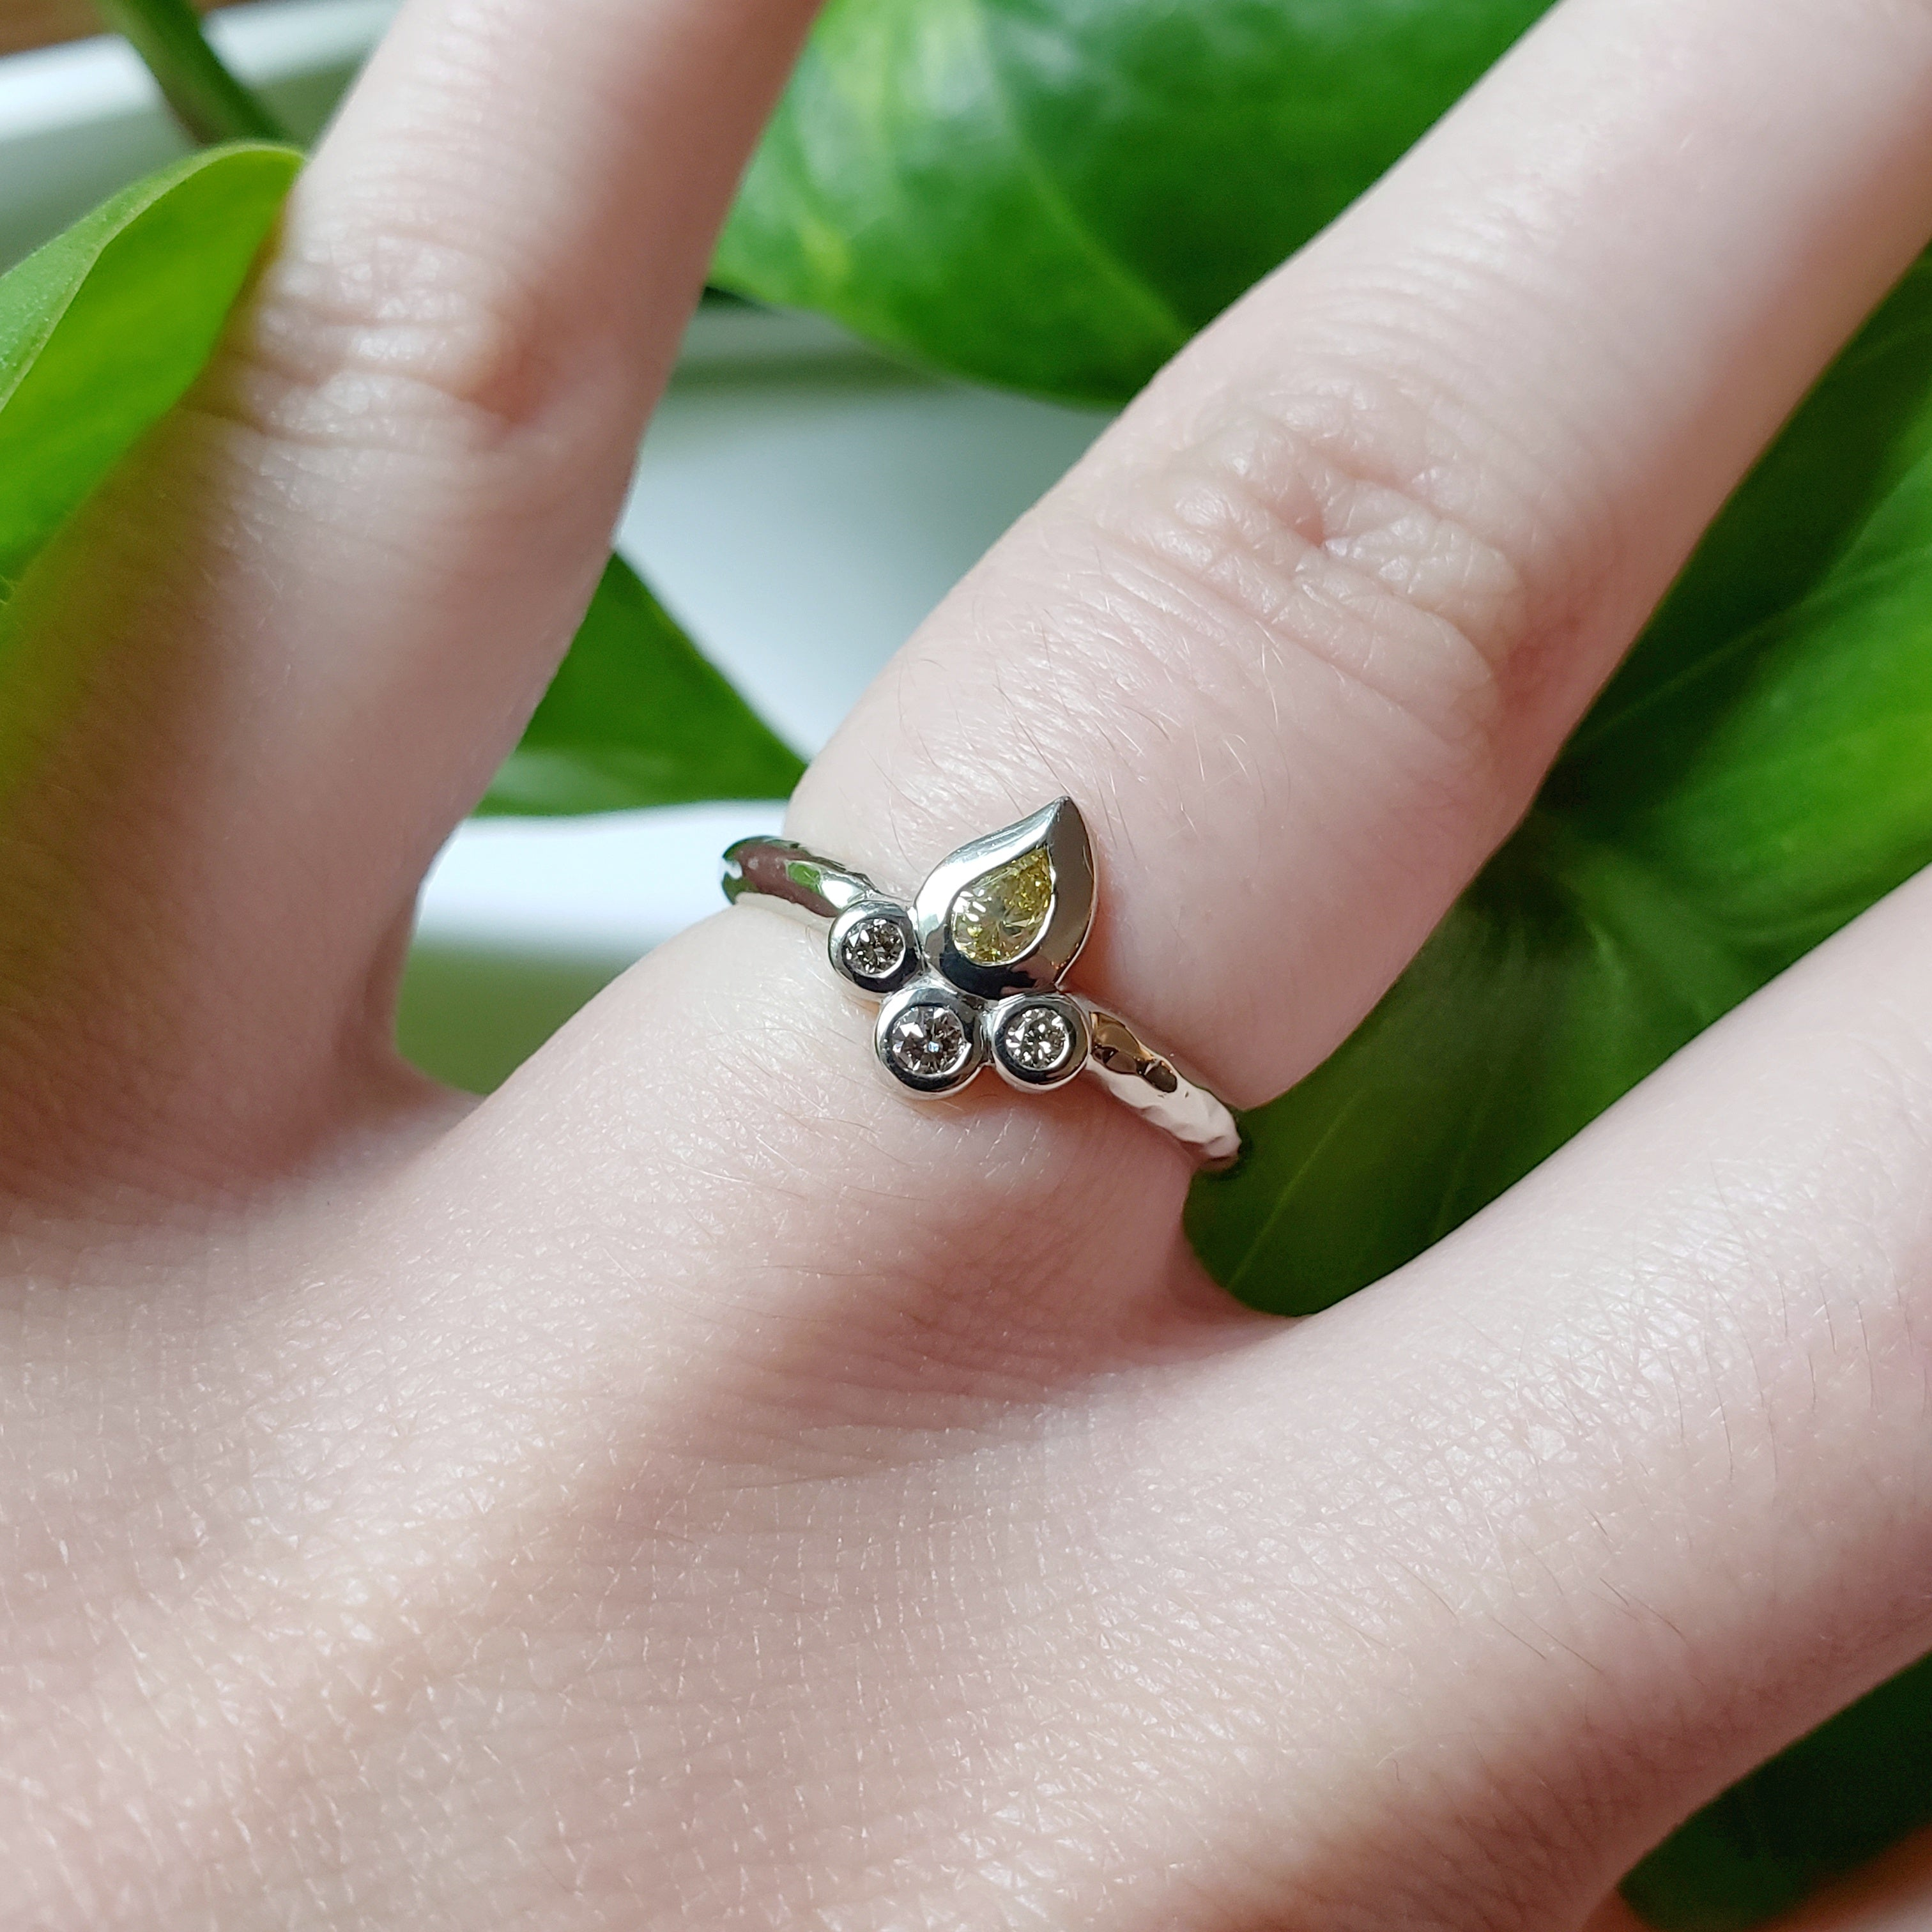 14kt white gold unique champagne diamond paisley pear shaped small engagement ring era design